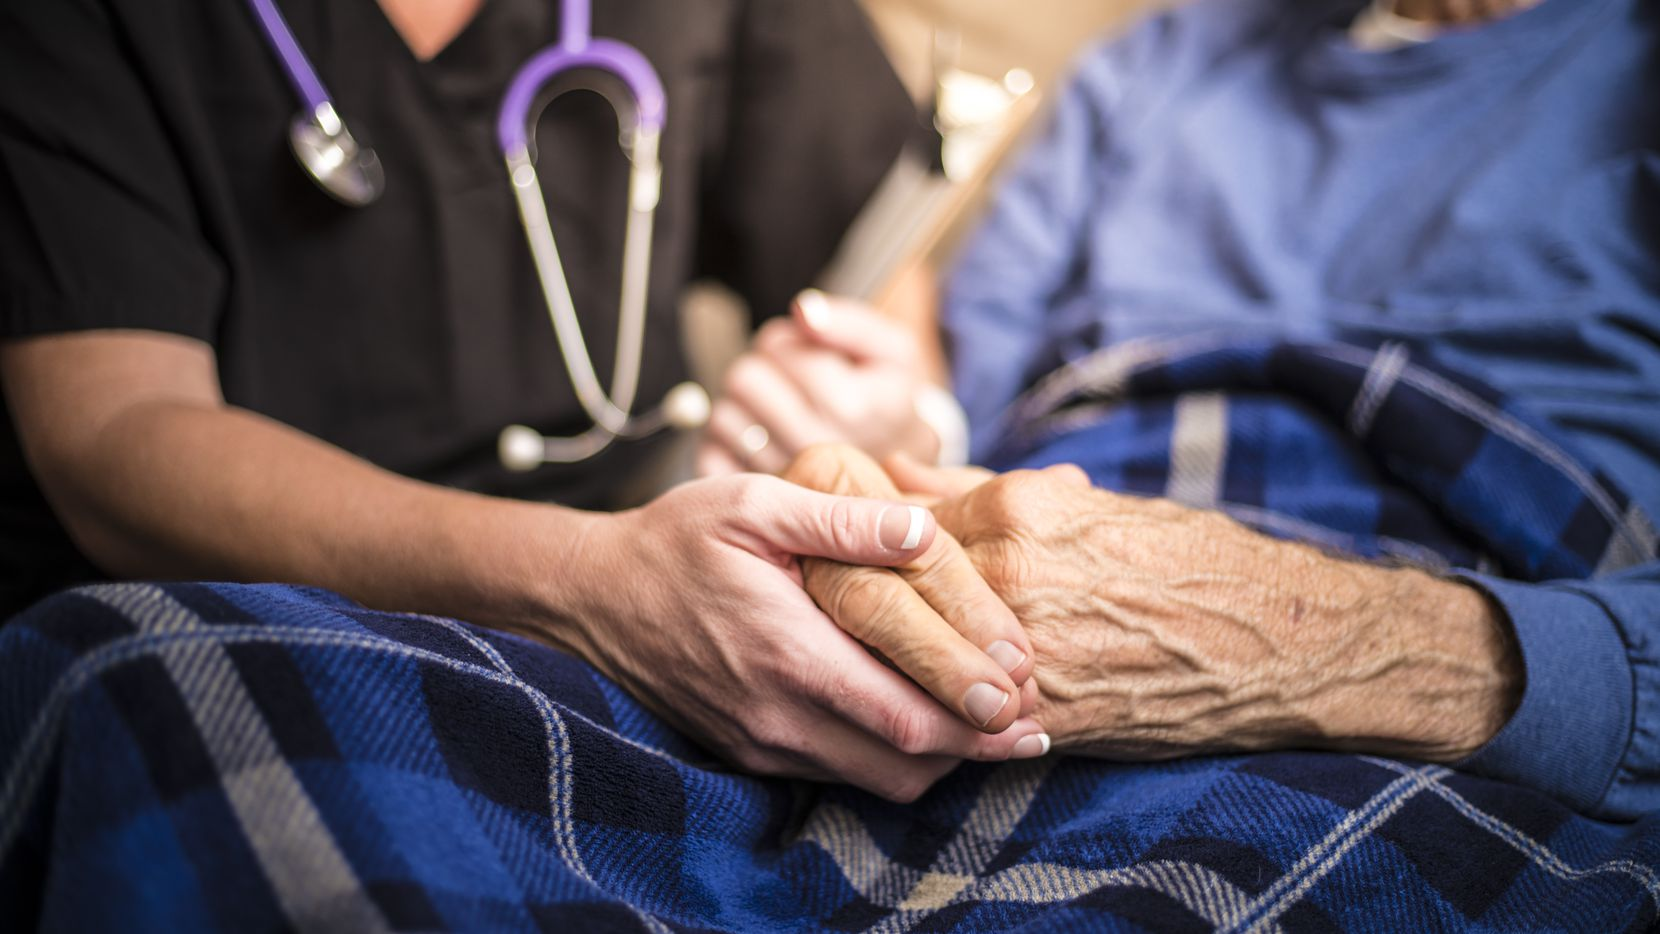 Addus HomeCare Corp. announced the deal Monday with Hospice Partners of America LLC.